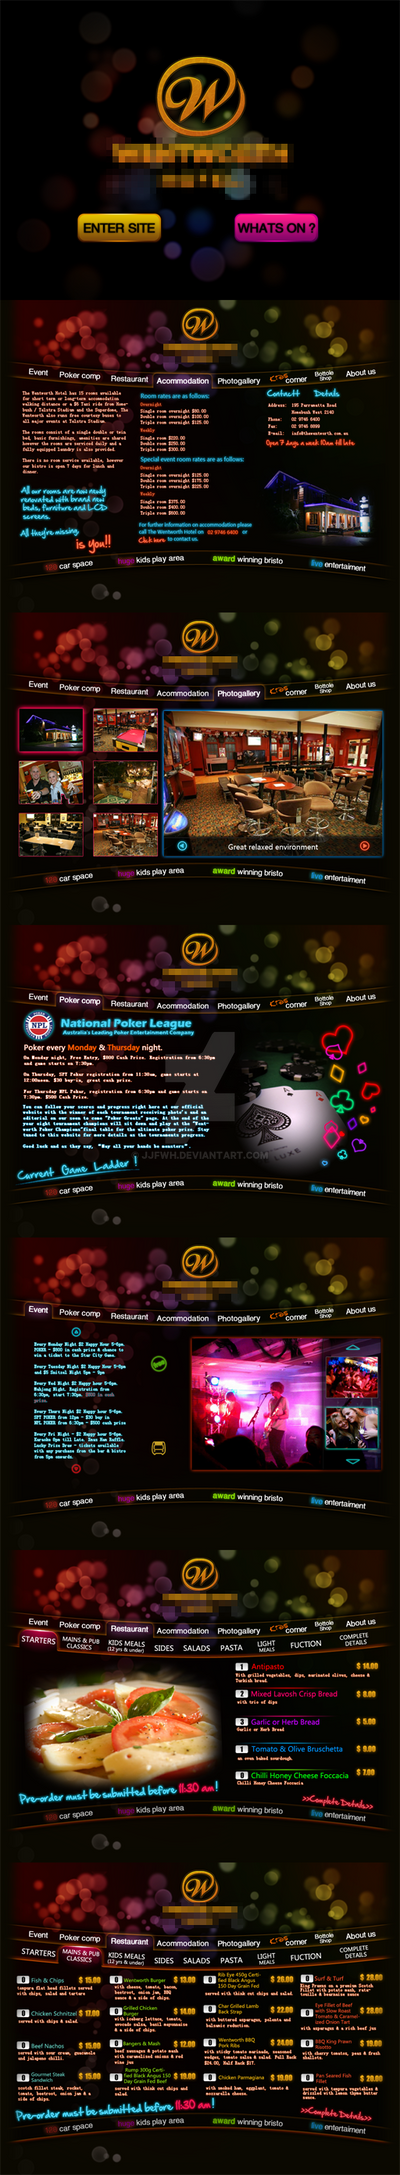 casino website design